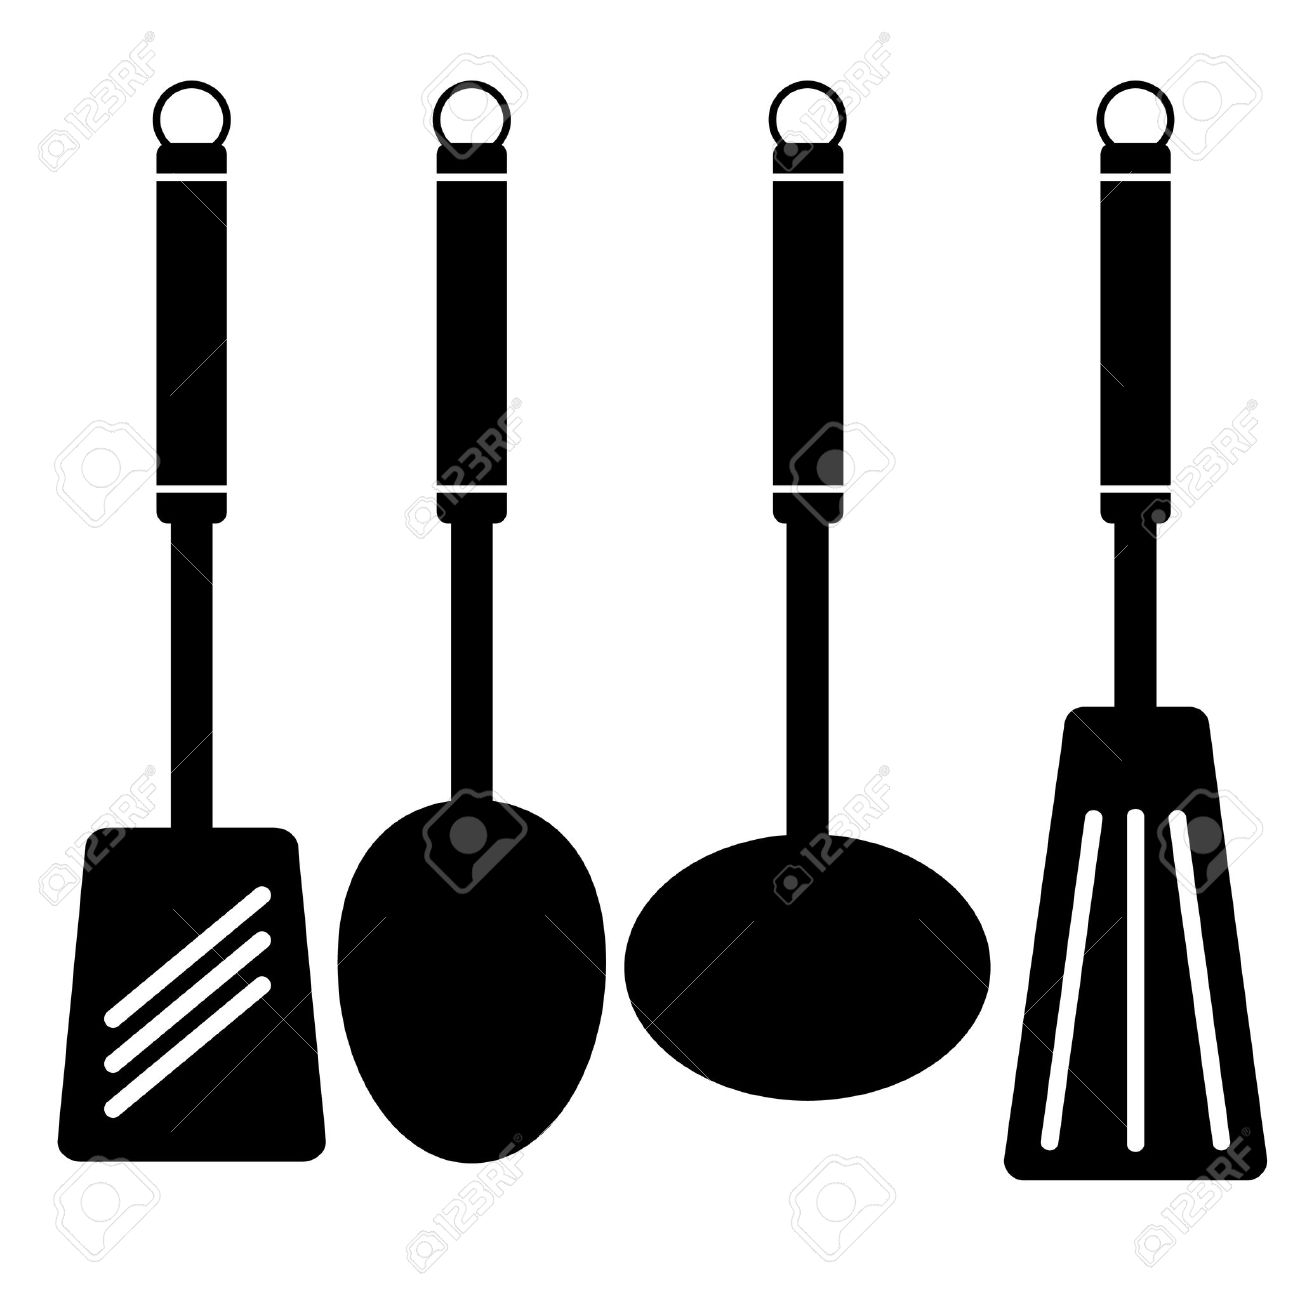 Kitchen Stencil Vector Hollow Ware Royalty Free Cliparts Vectors And Stock